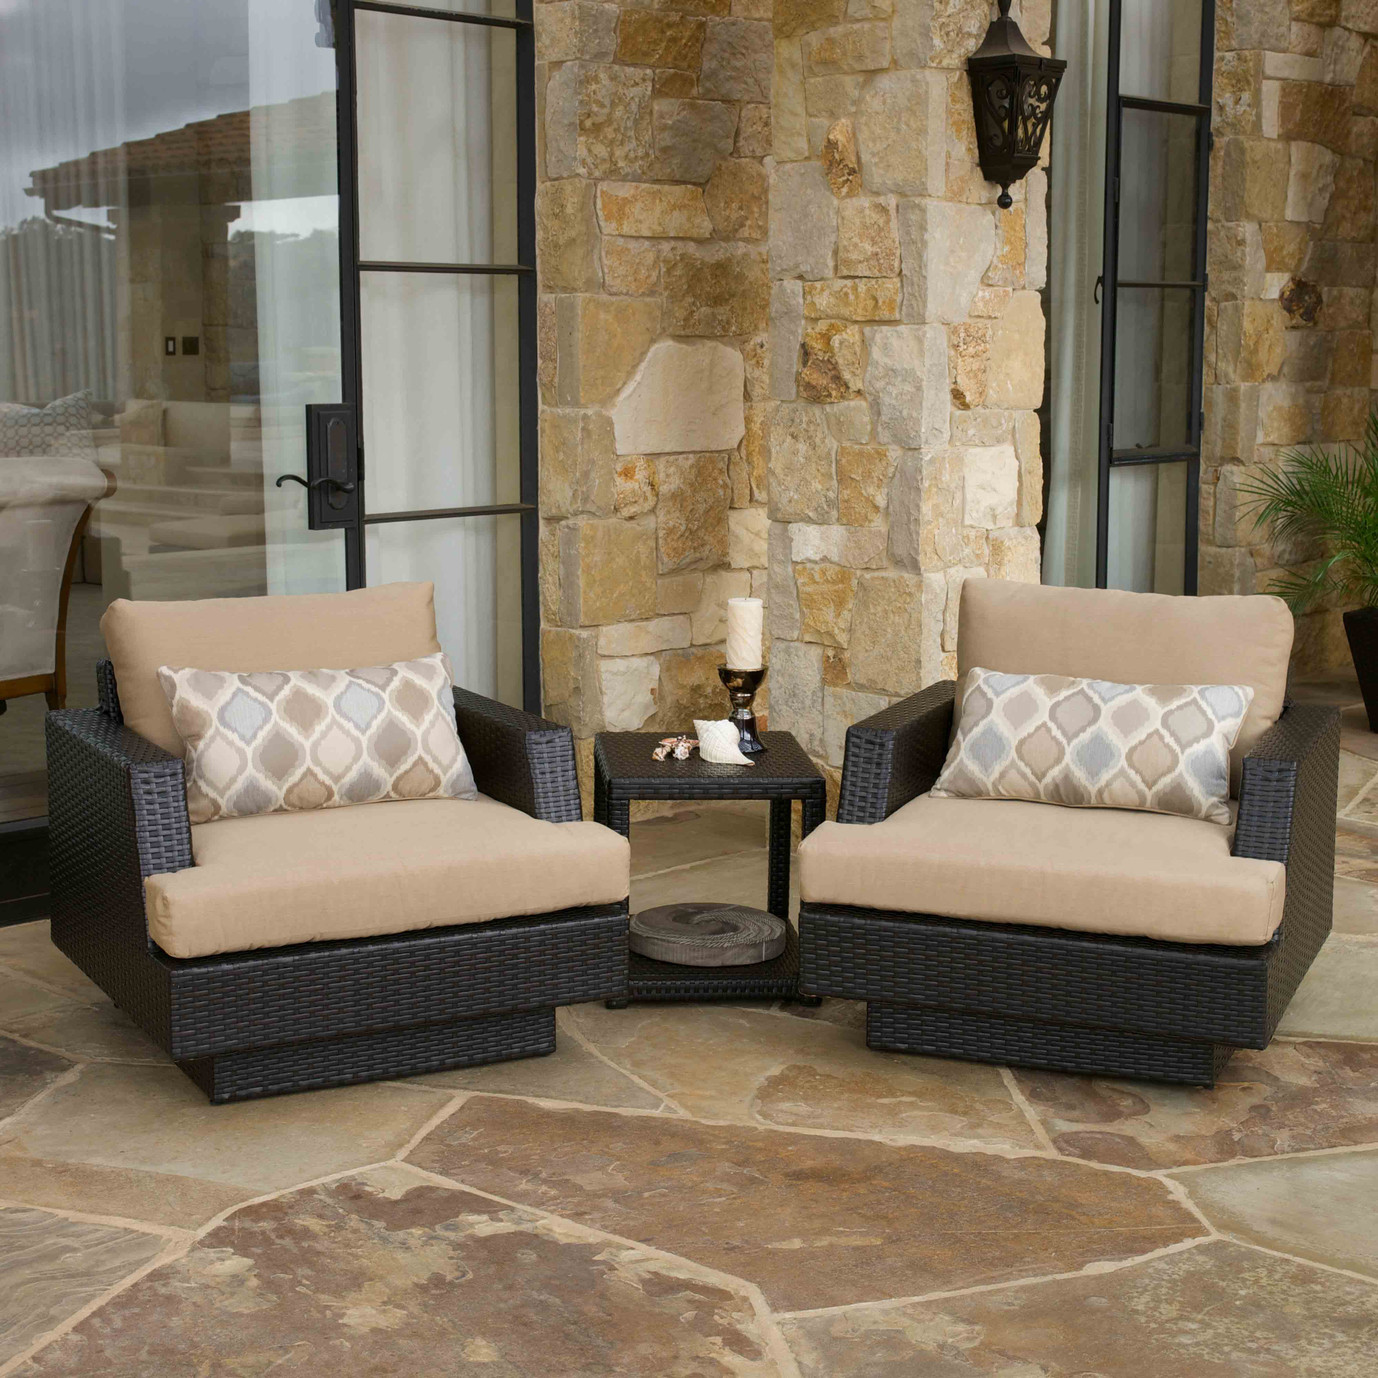 Portofino™ Comfort 5pc Club Chair Set - Heather Beige